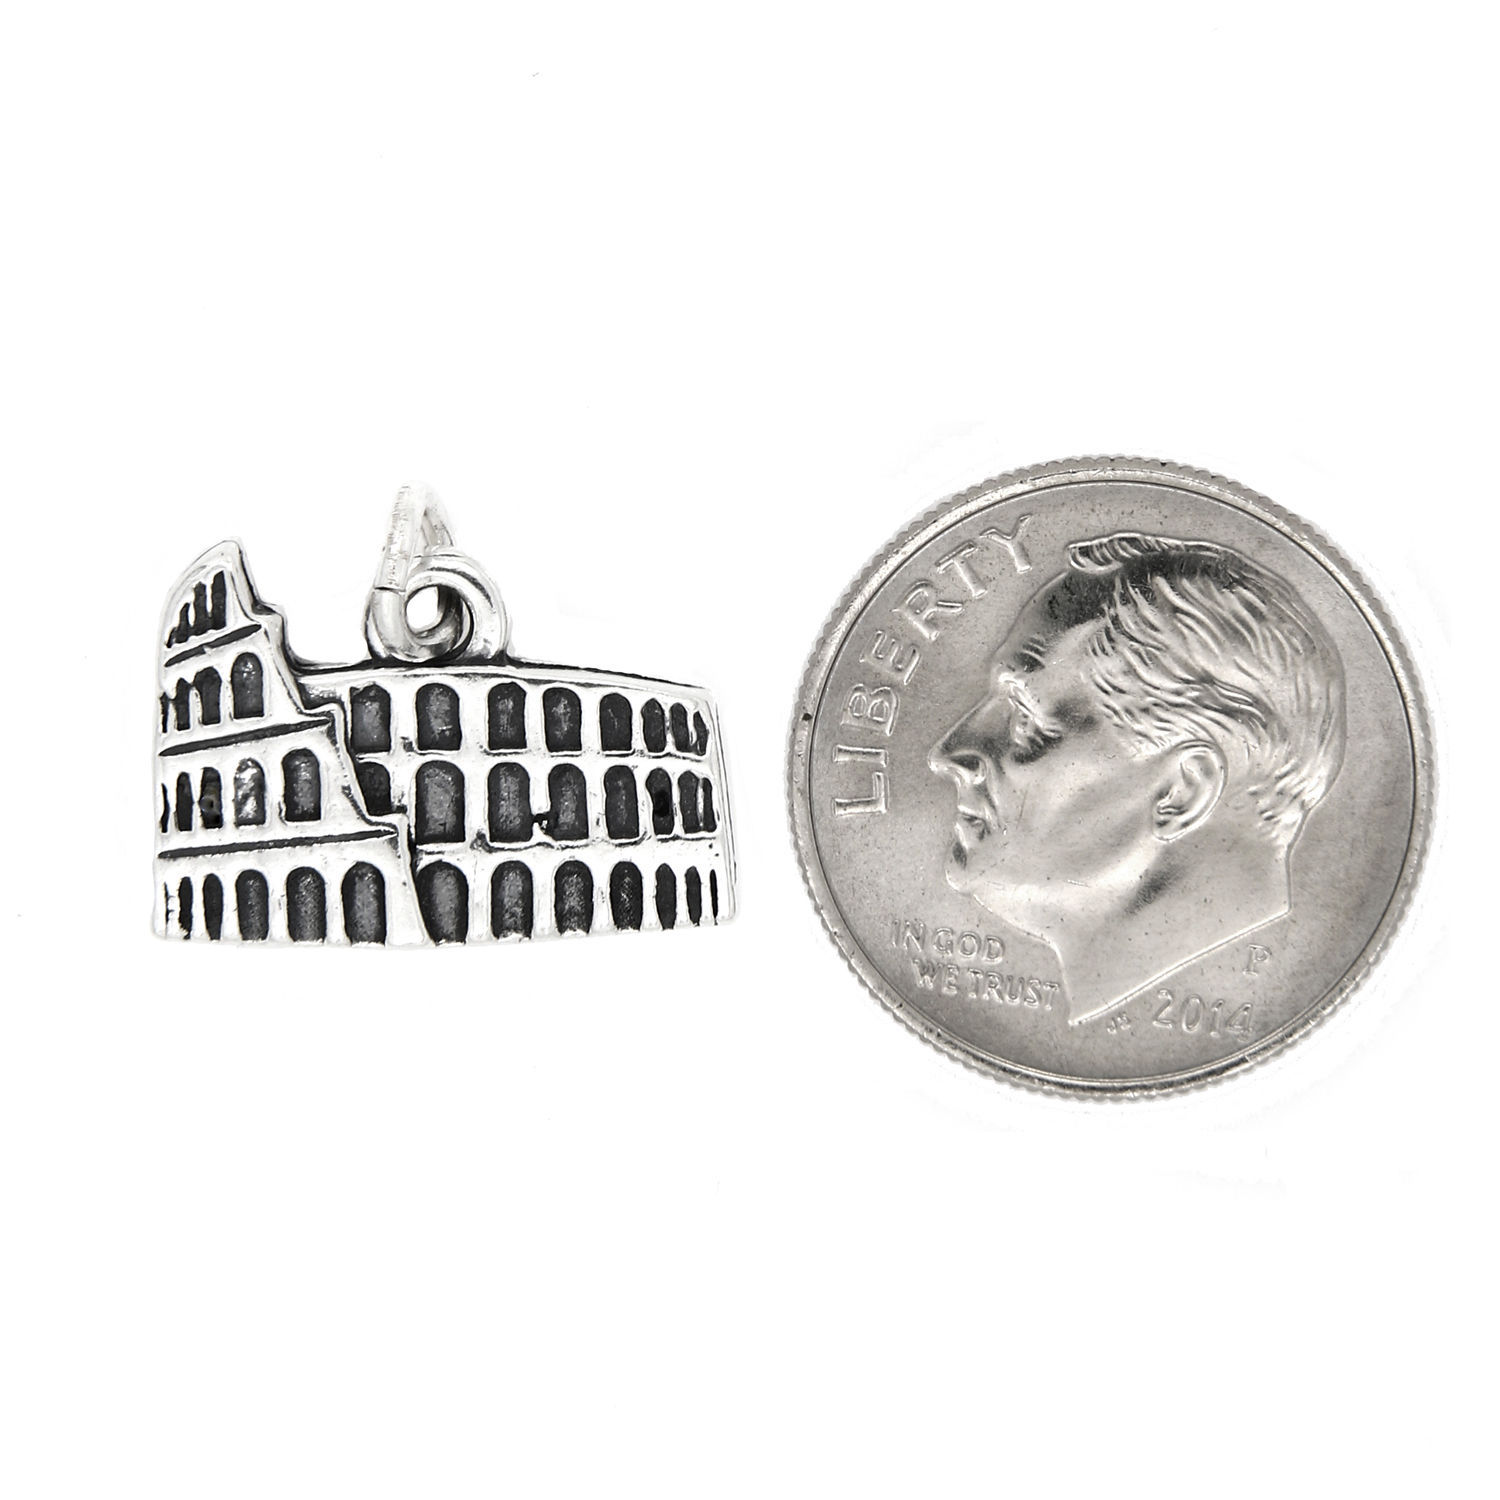 NEW STERLING SILVER SOLID COLOSSEUM CHARM PENDANT